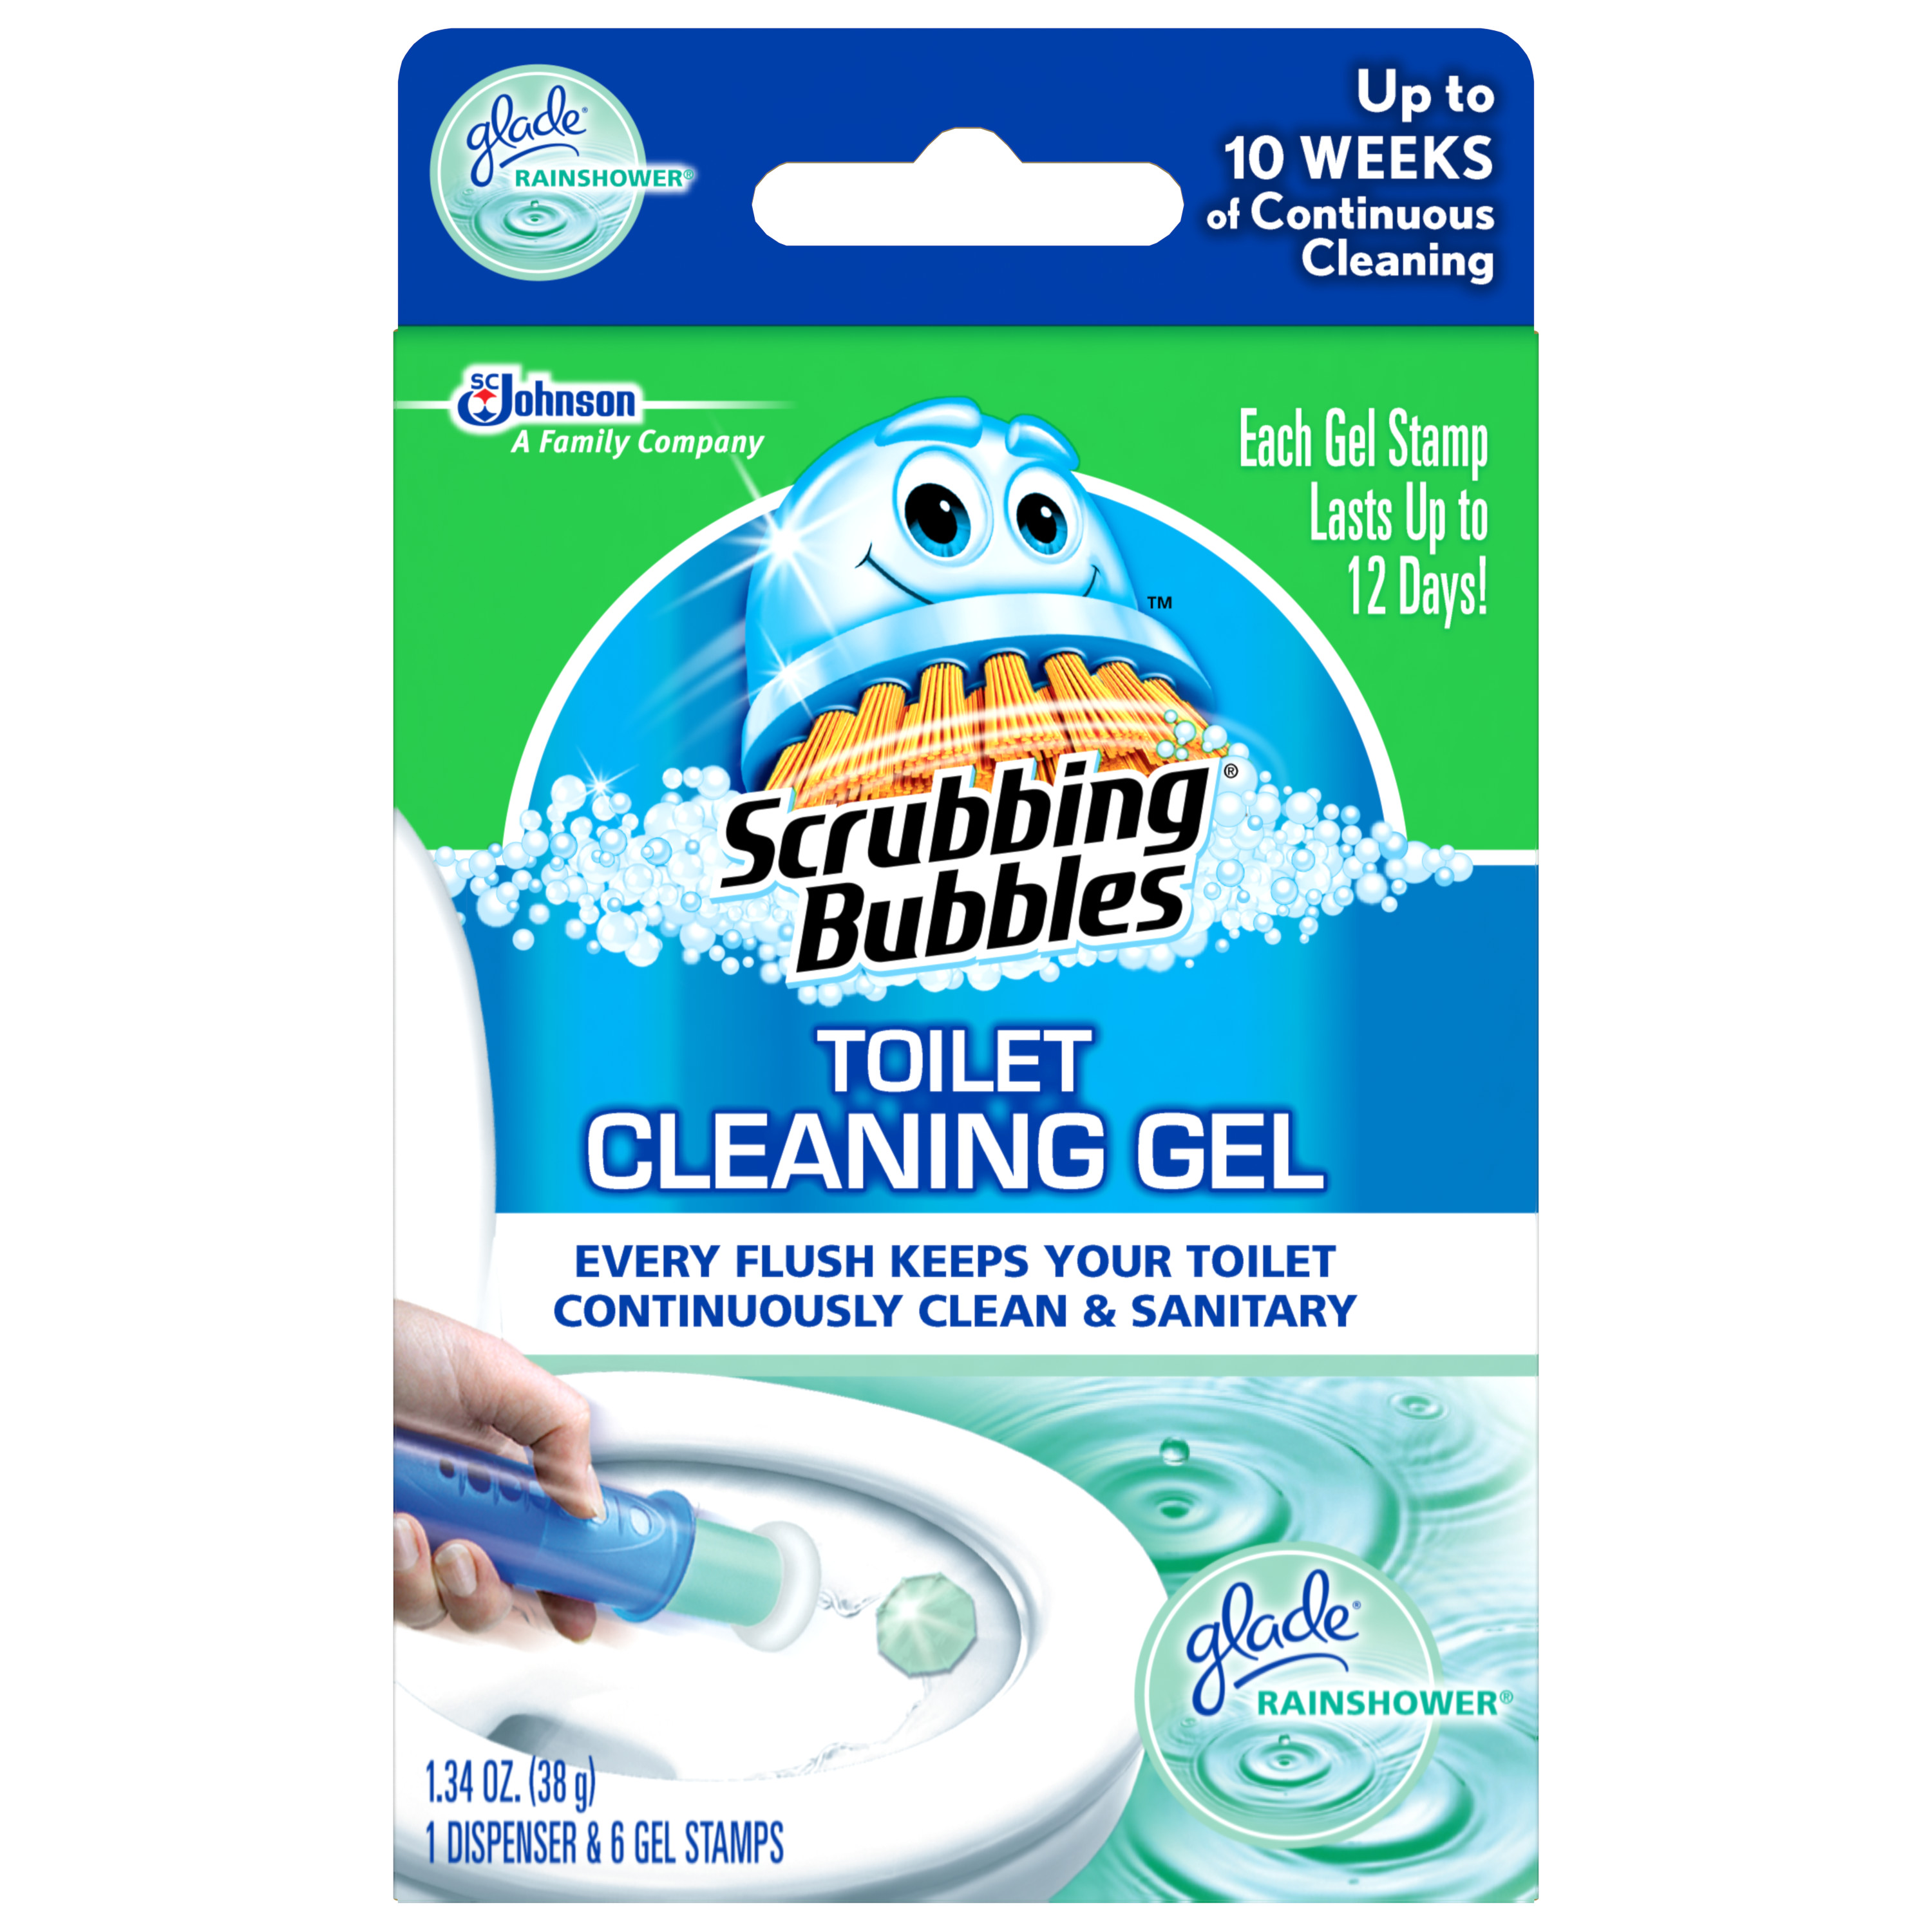 Scrubbing Bubbles Toilet Cleaning Gel Glade Rainshower 1.34 Ounces